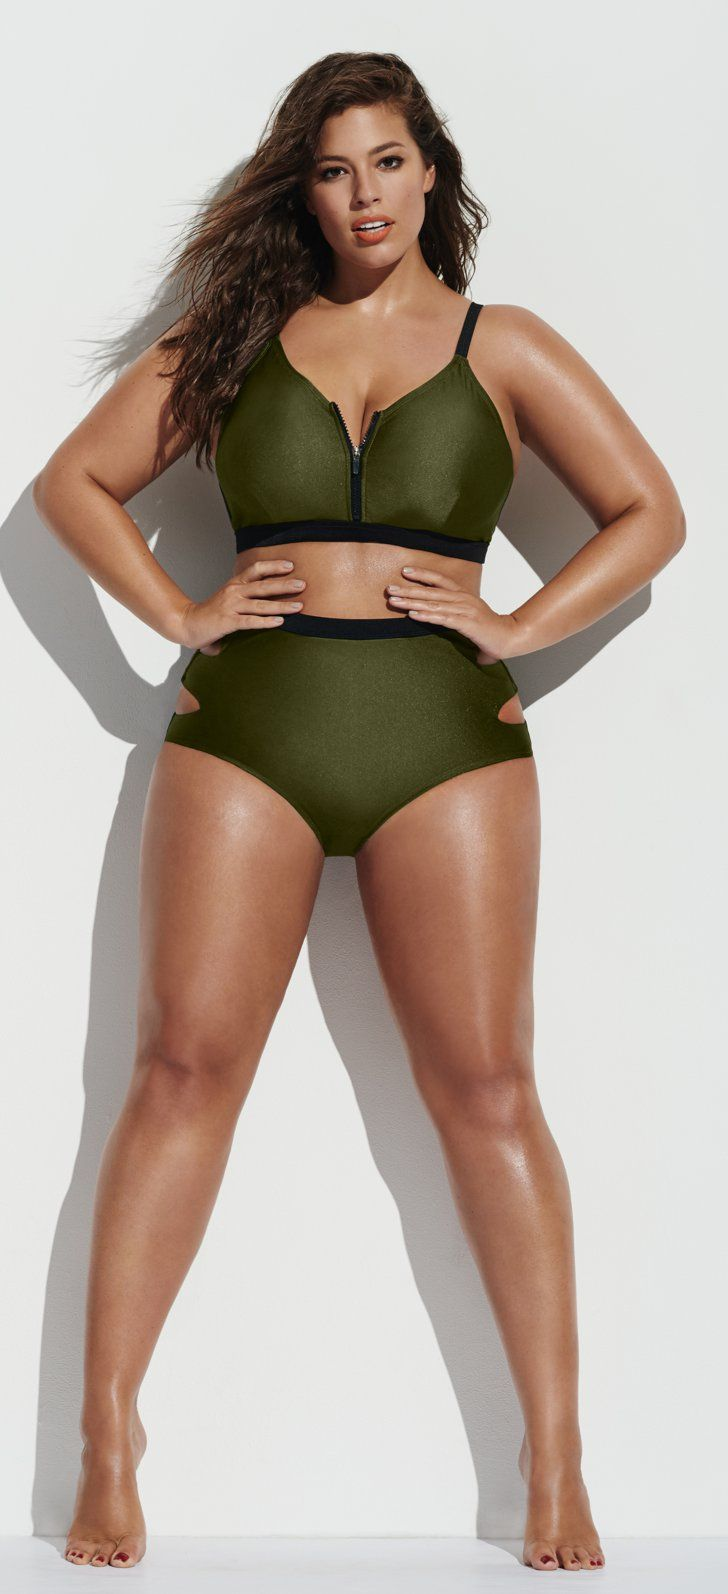 What, look plus model ashley graham pon pics can